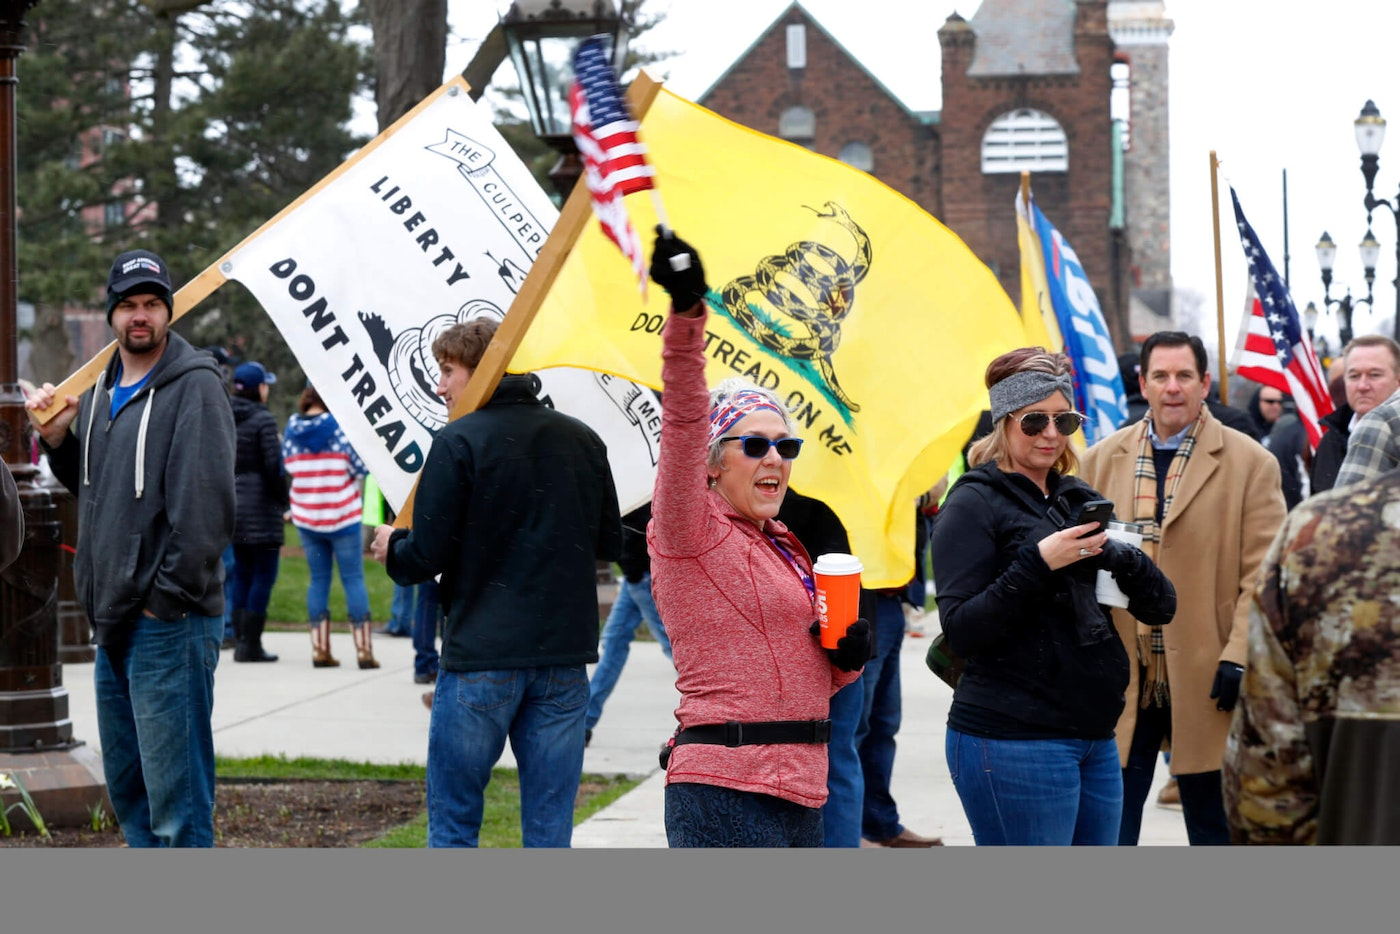 Protesters attend a rally outside the State Capitol in Lansing, Mich., Wednesday, April 15, 2020. Flag-waving, honking protesters drove past the Michigan Capitol on Wednesday to show their displeasure with Gov. Gretchen Whitmer's orders to keep people at home and businesses locked during the new coronavirus COVID-19 outbreak. (AP Photo/Paul Sancya)